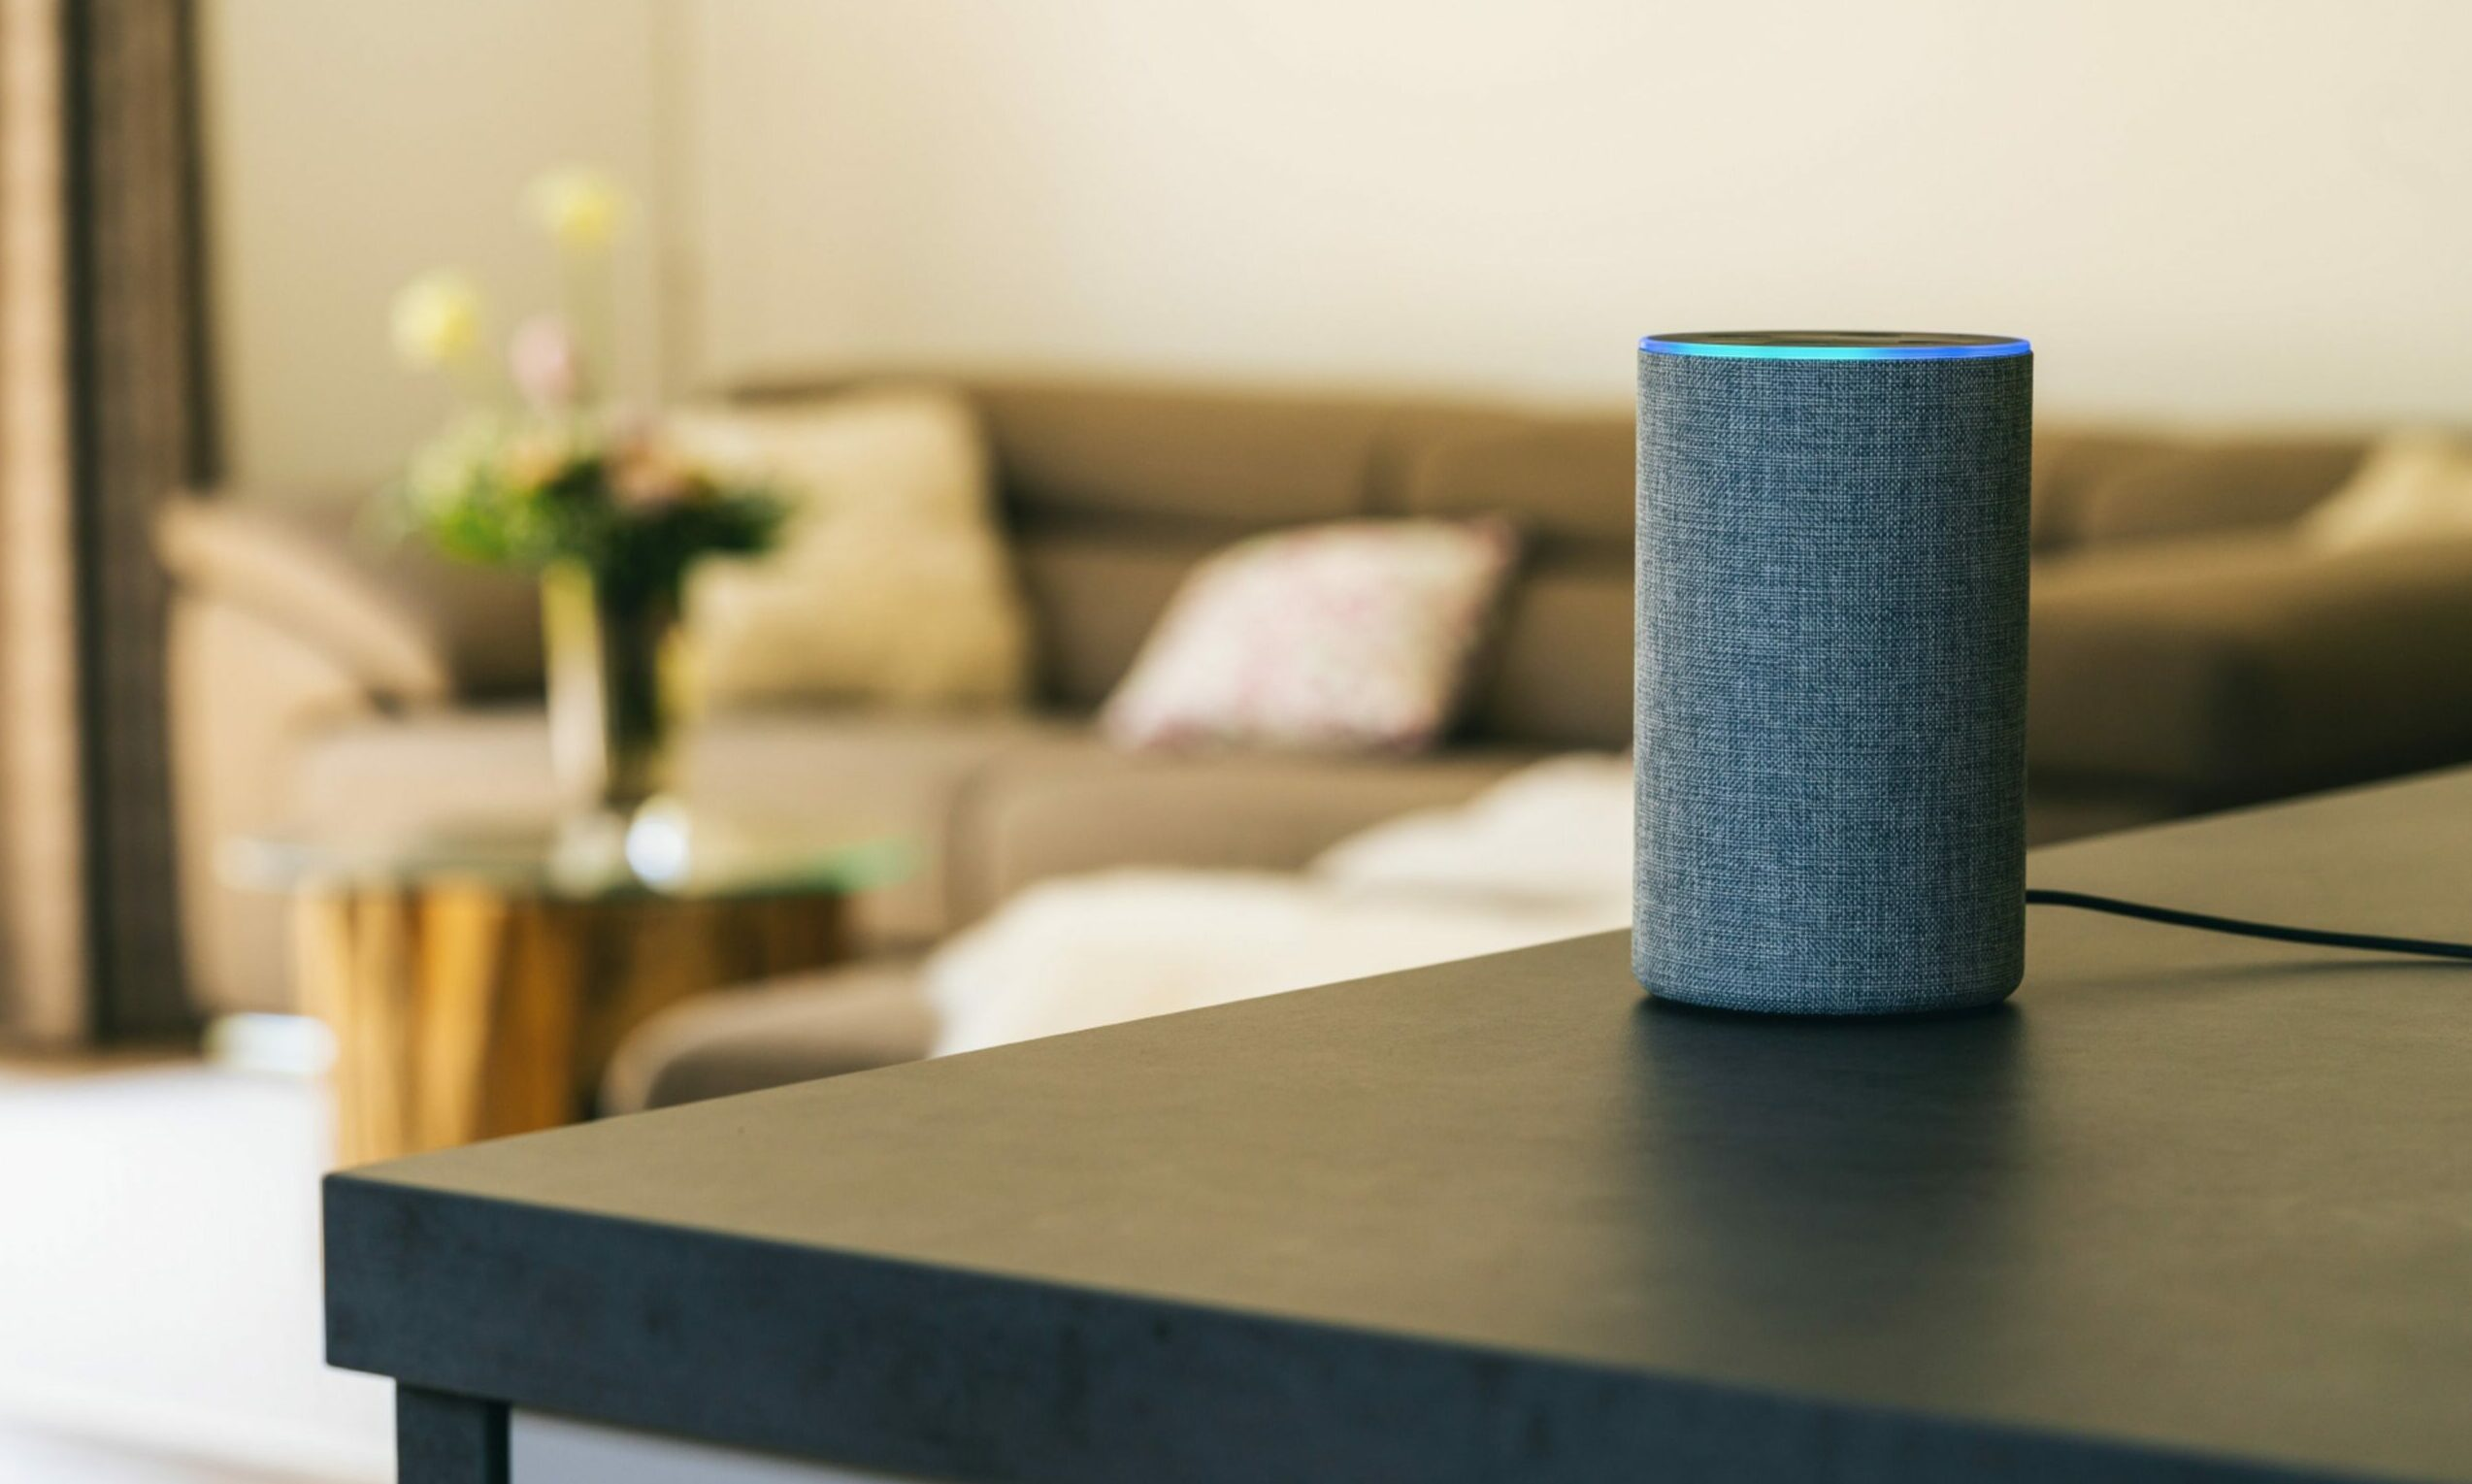 Colin says investing in a smart speaker, such as Amazon's Echo range, can help complete tasks for people with sight loss.